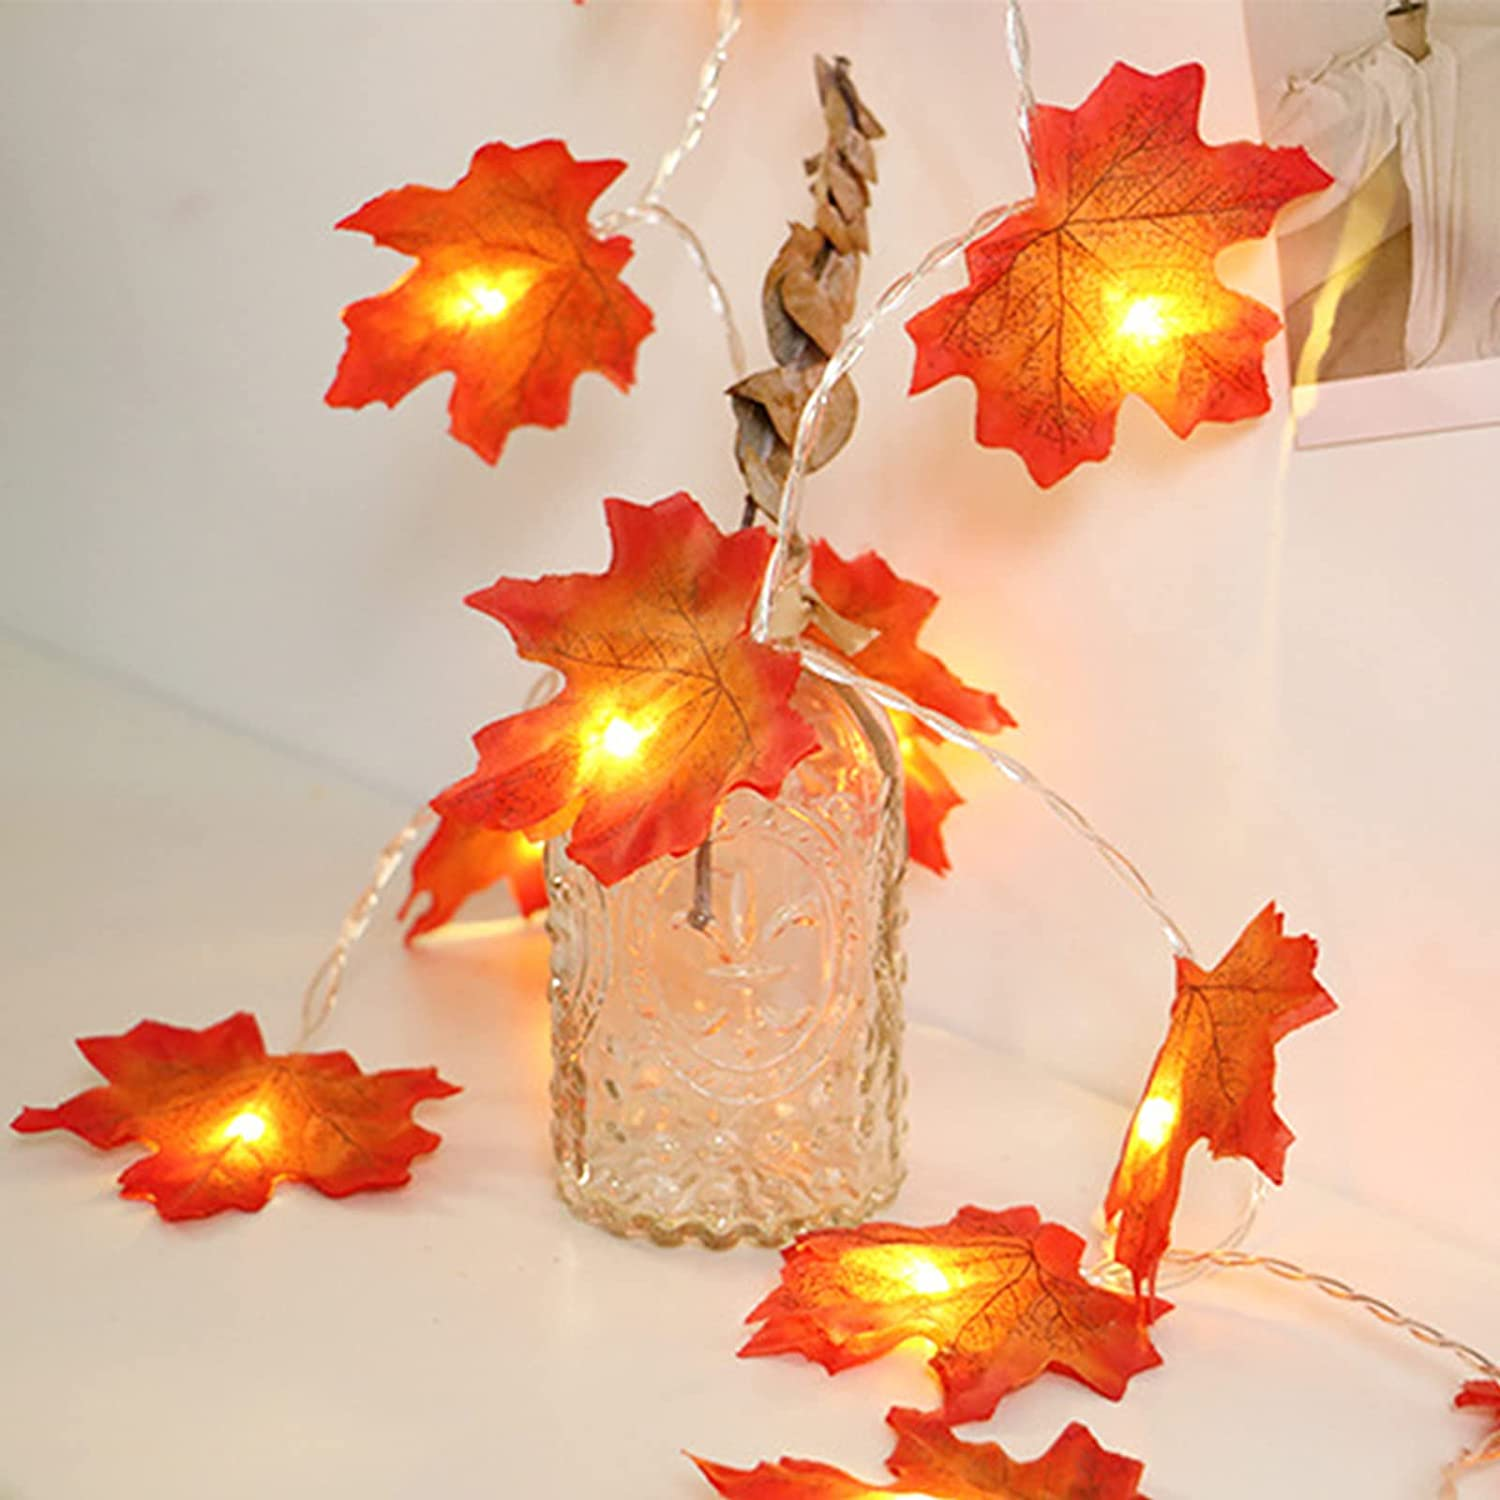 Thanksgiving Decor Fall Lights Battery LEDs Ma 20 Cash special price 10FT Ranking TOP15 Operated